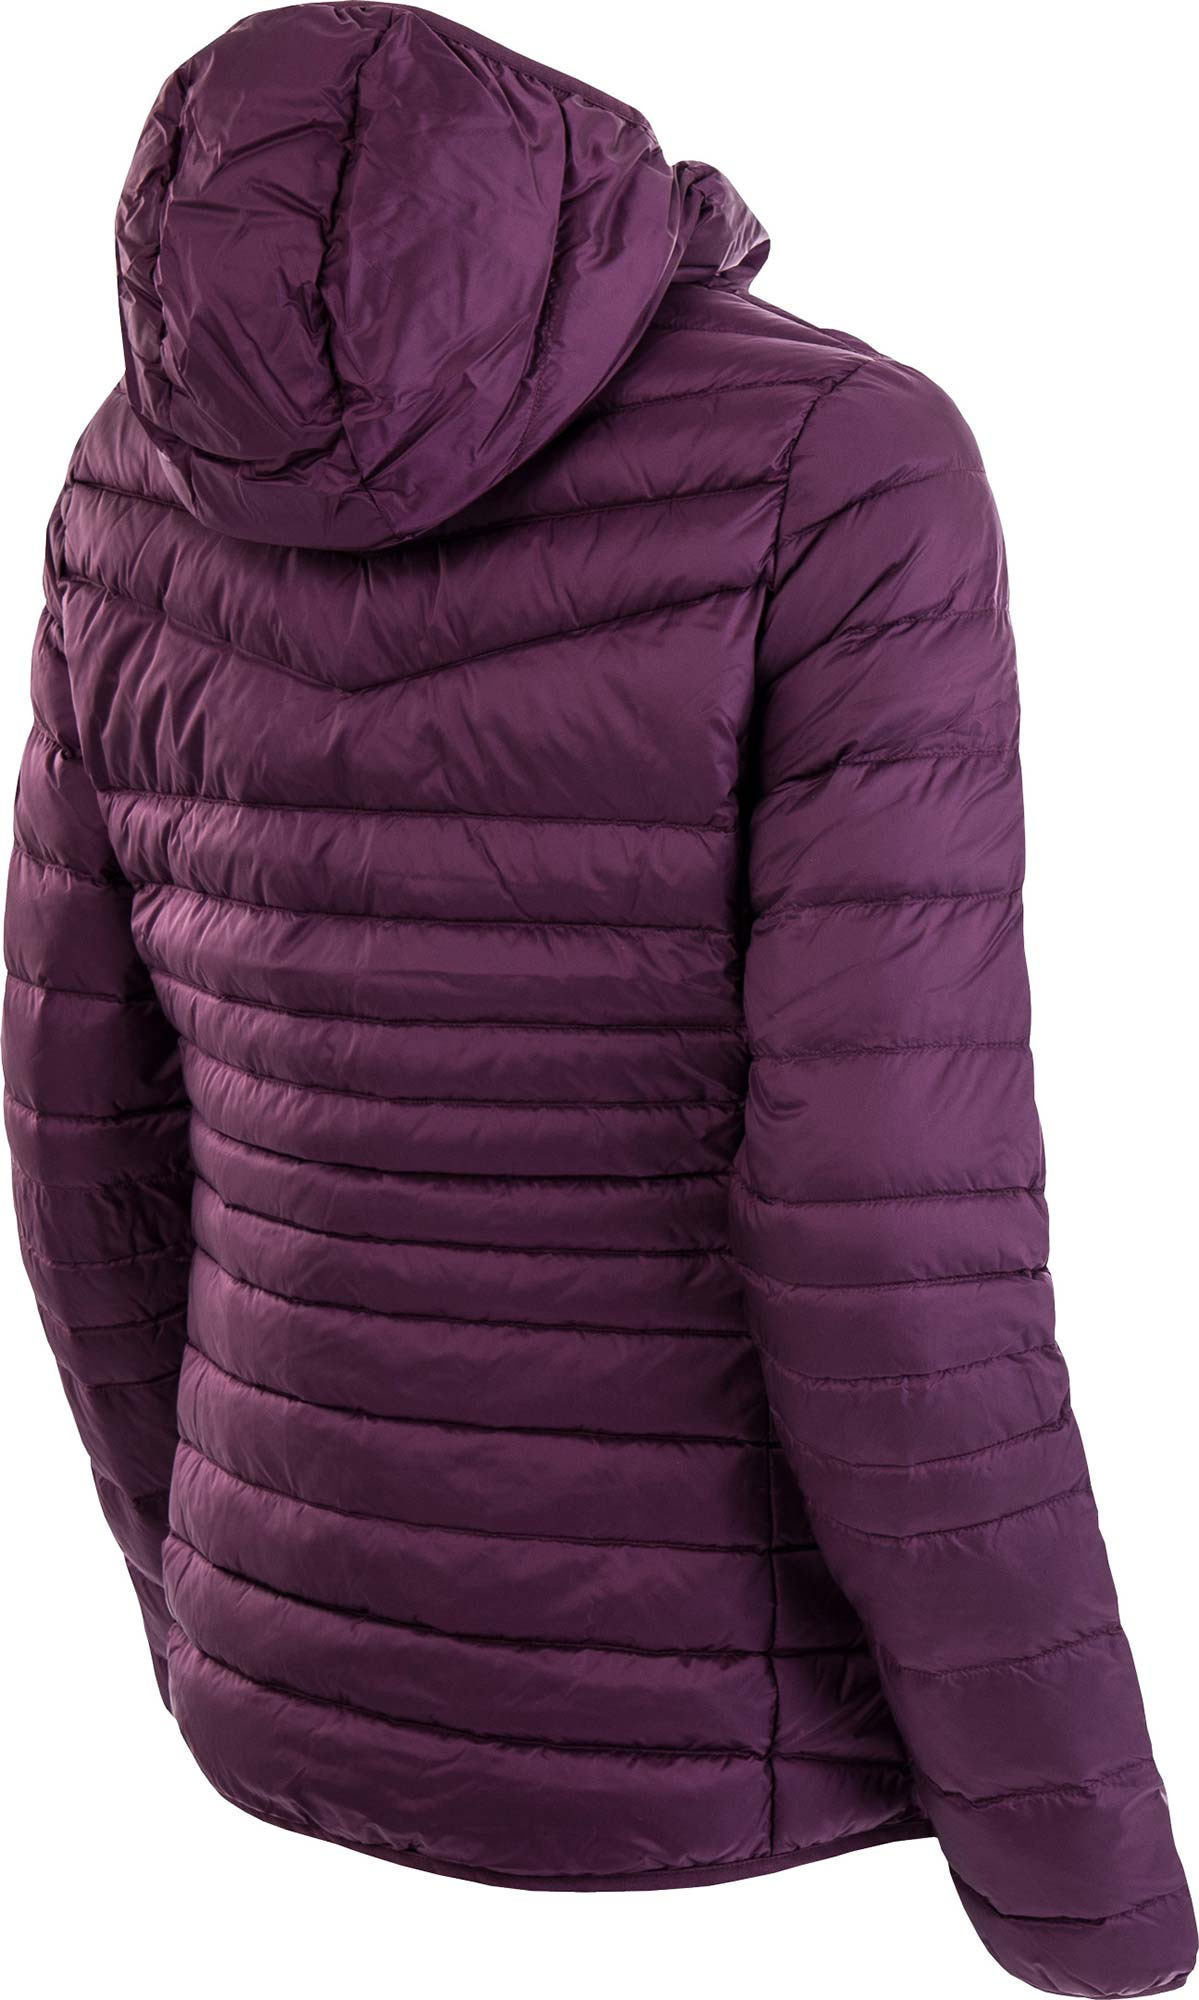 2e5b97d5c96a ACTIVE 600 PACKLIGHT HOODED DOWN JACKET - Women s Winter Jacket